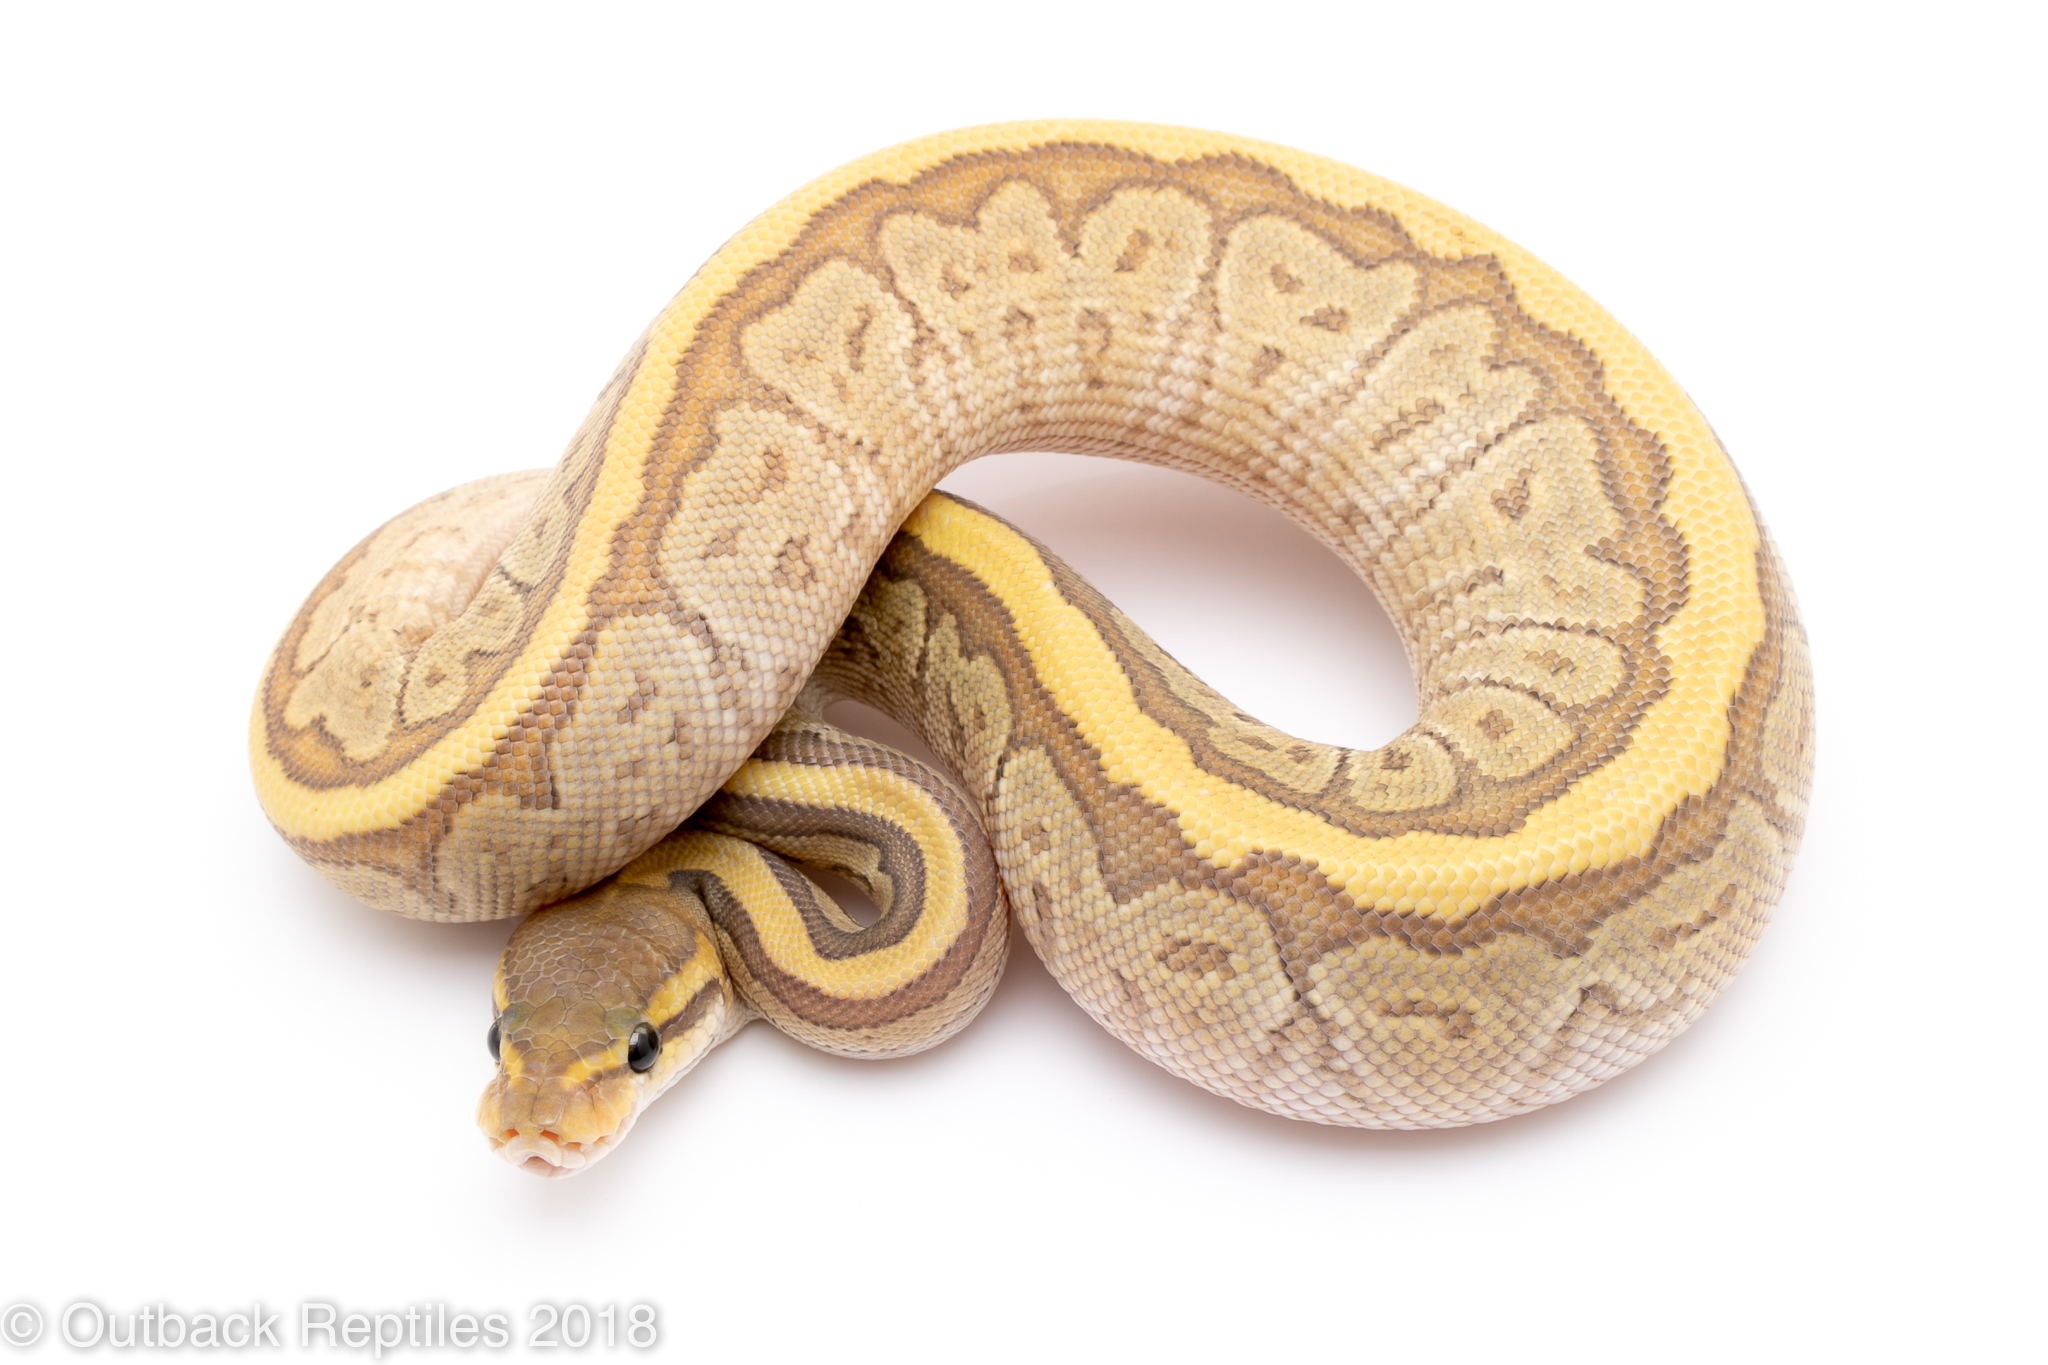 ghost mojave pinstripe ball python for sale